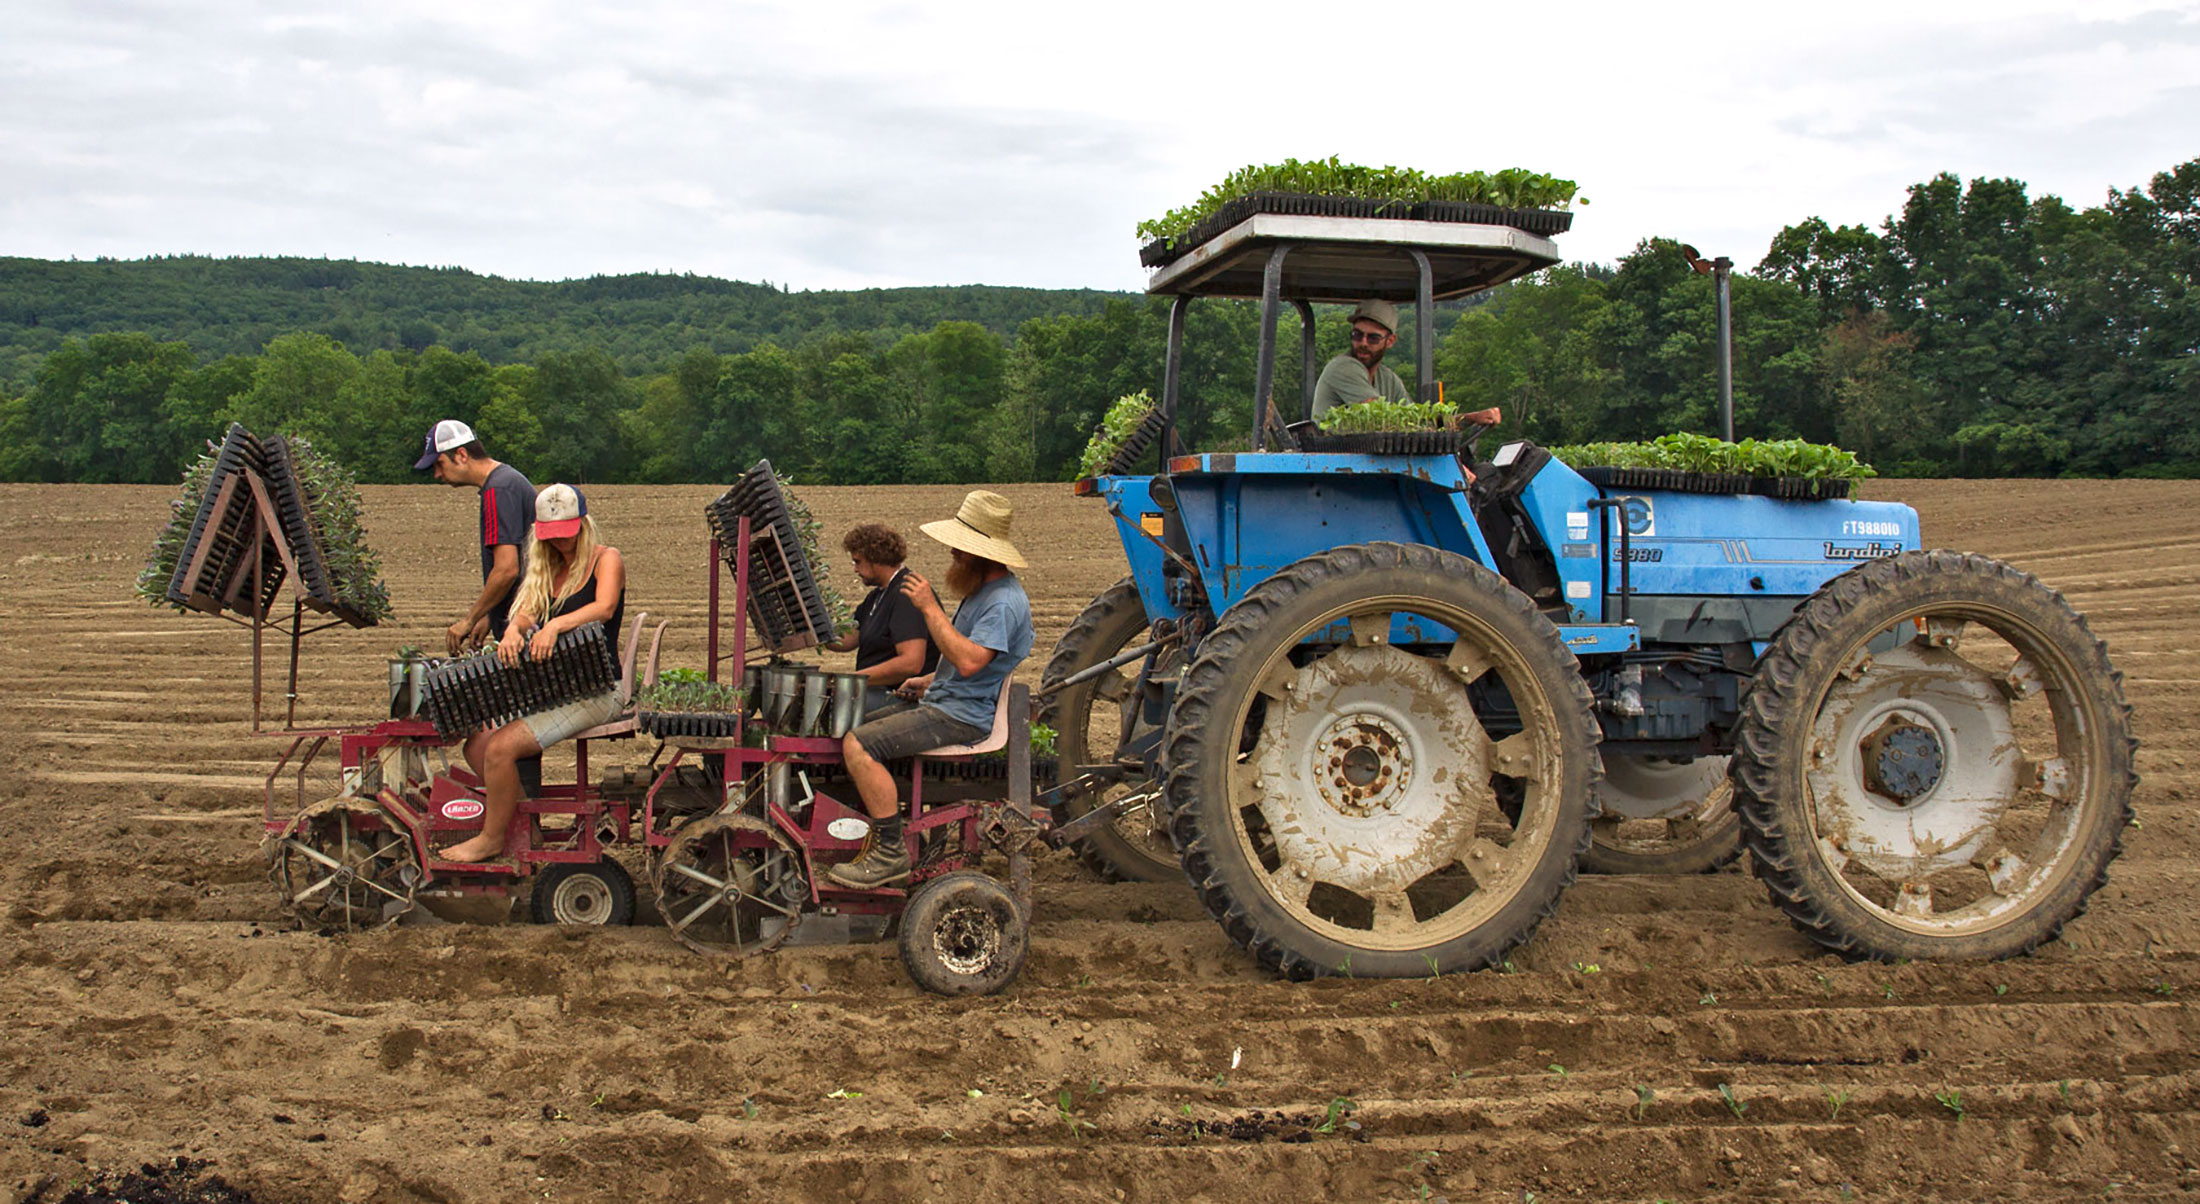 BRENT SEABROOK: THE VERMONT FARMWORK PROJECT